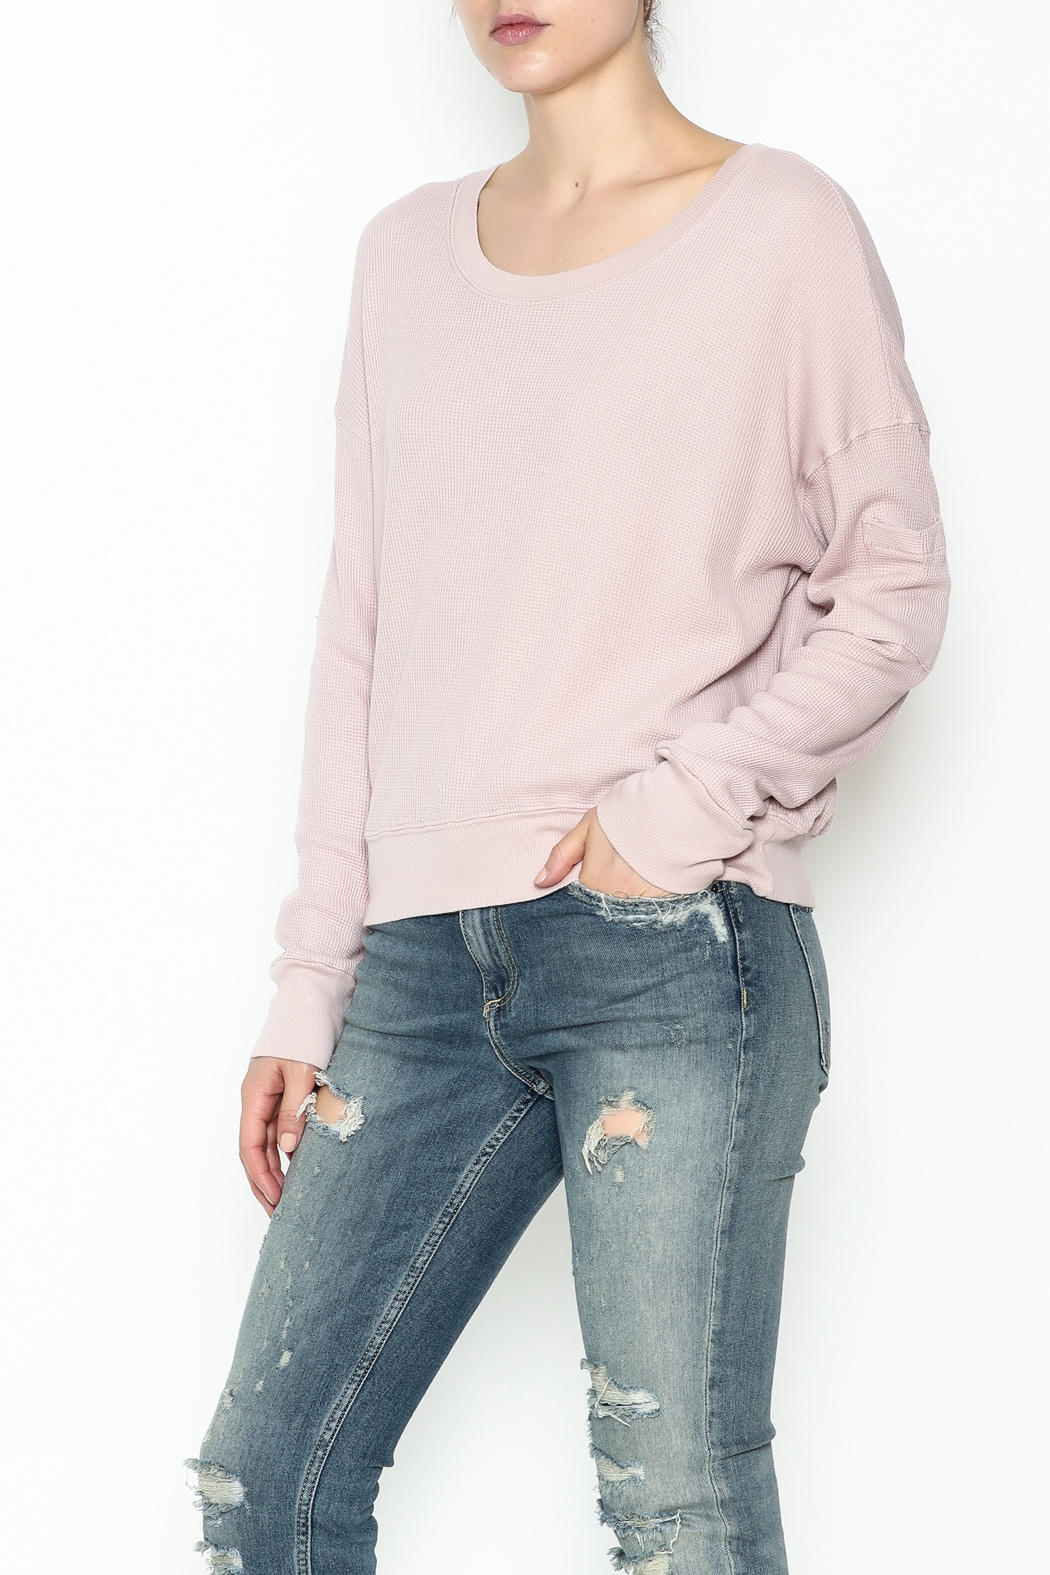 Splendid Wedge Crop Top - Main Image